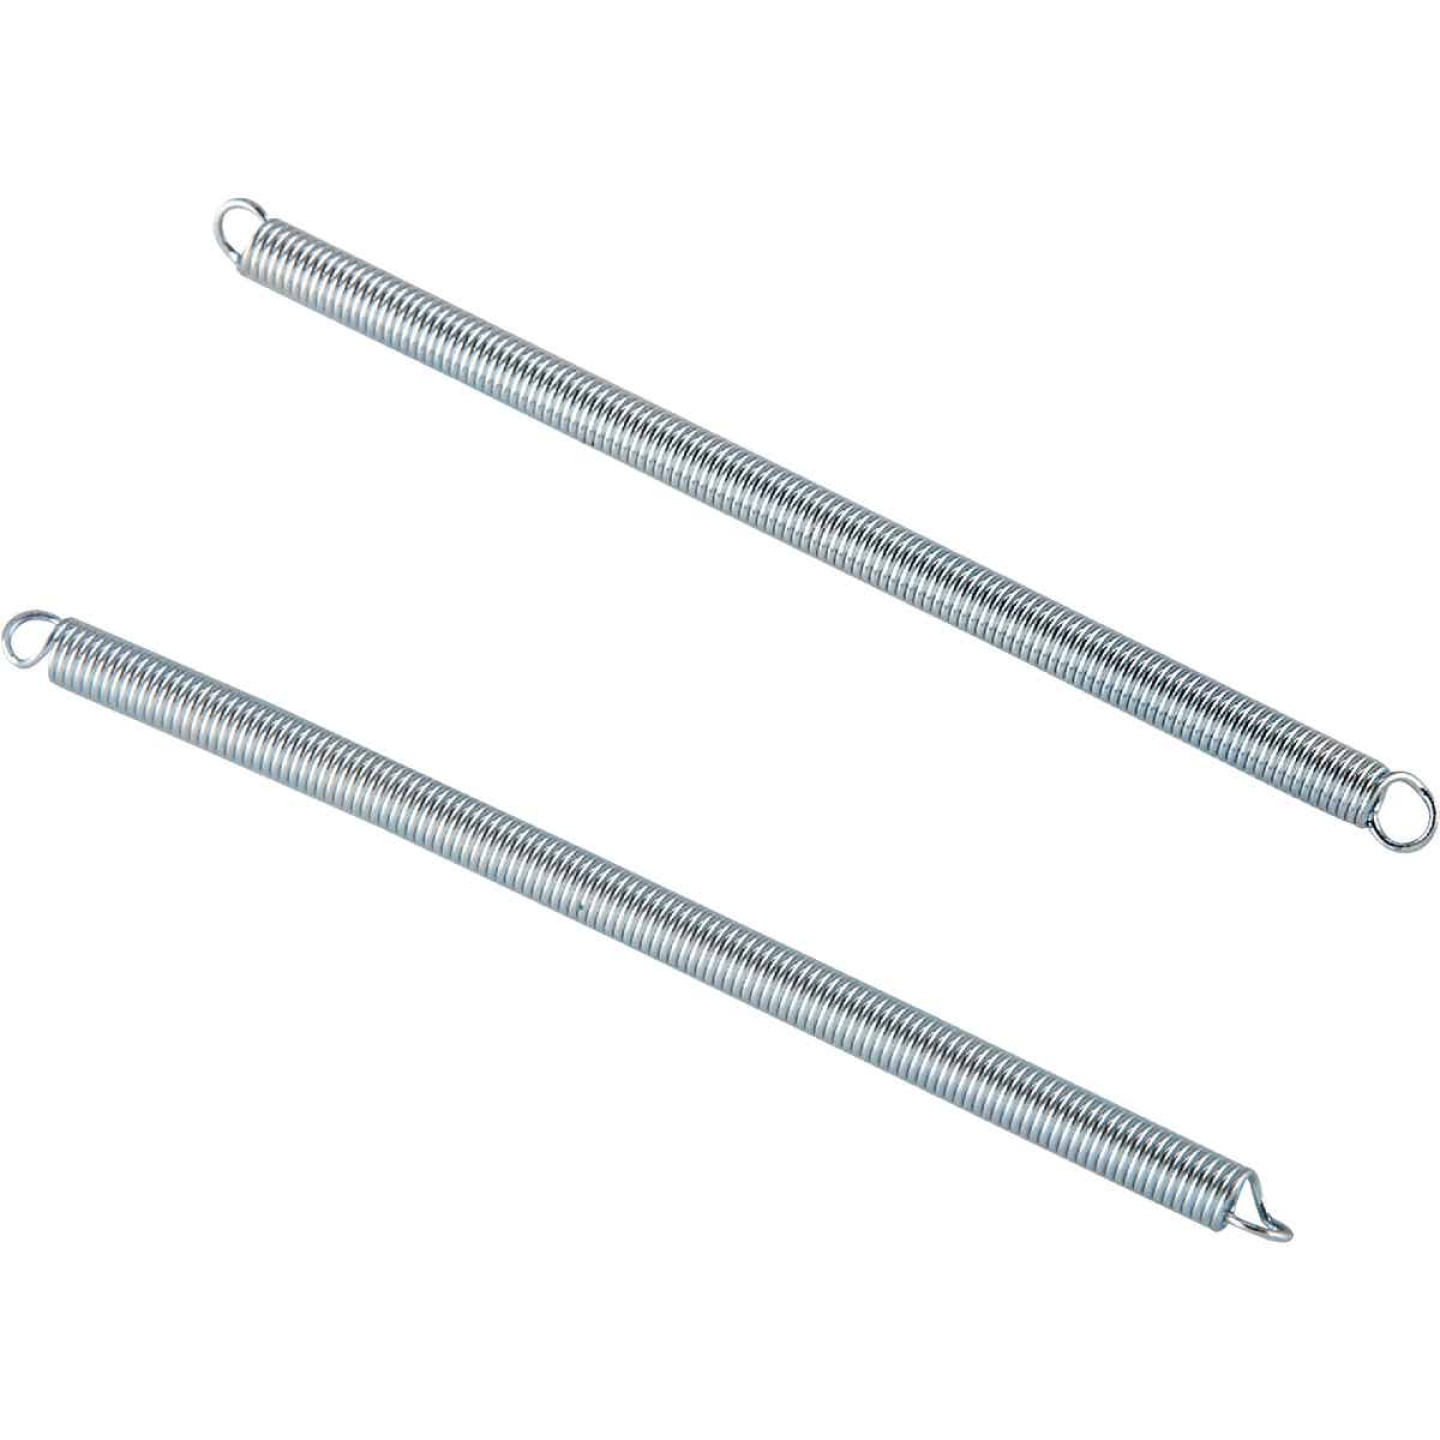 Century Spring 3-1/4 In. x 5/8 In. Extension Spring (2 Count) Image 1